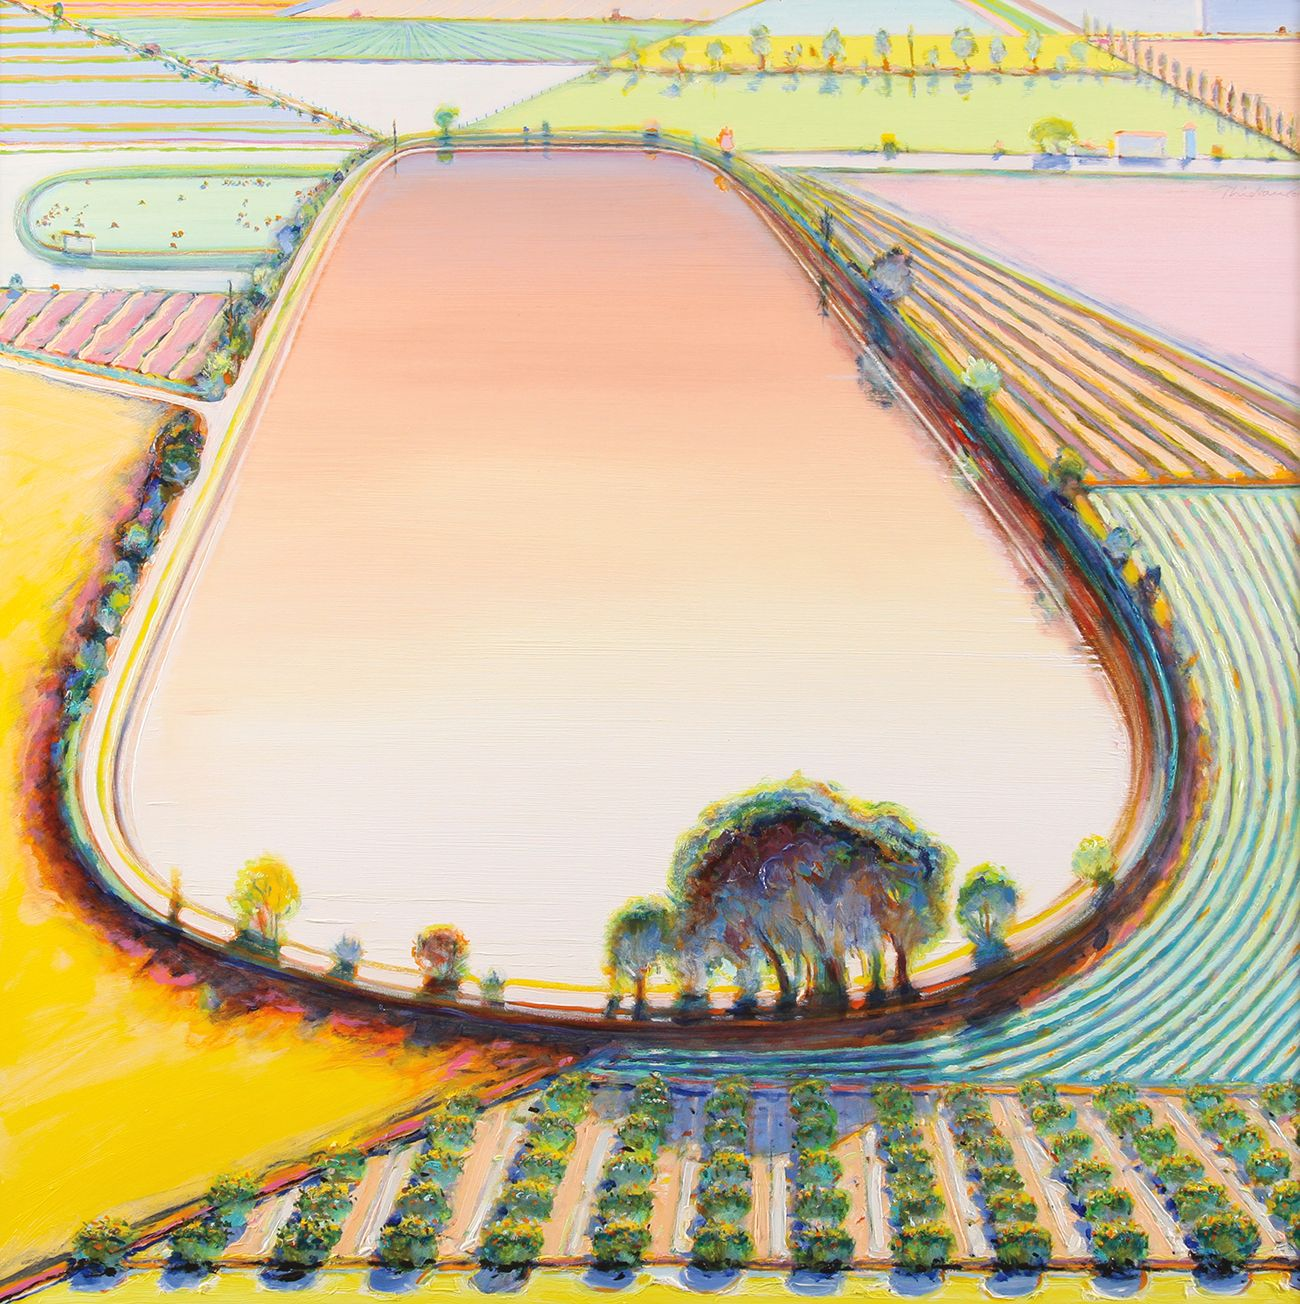 Wayne Thiebaud, Reservoir and Orchard,2001, oil on canvas, 40 x 40 inches (101.6 x 101.6 cm), Collection of Wayne and Betty Jean Thiebaud. Art ©Wayne Thiebaud / Licensed by VAGA, New York, NY